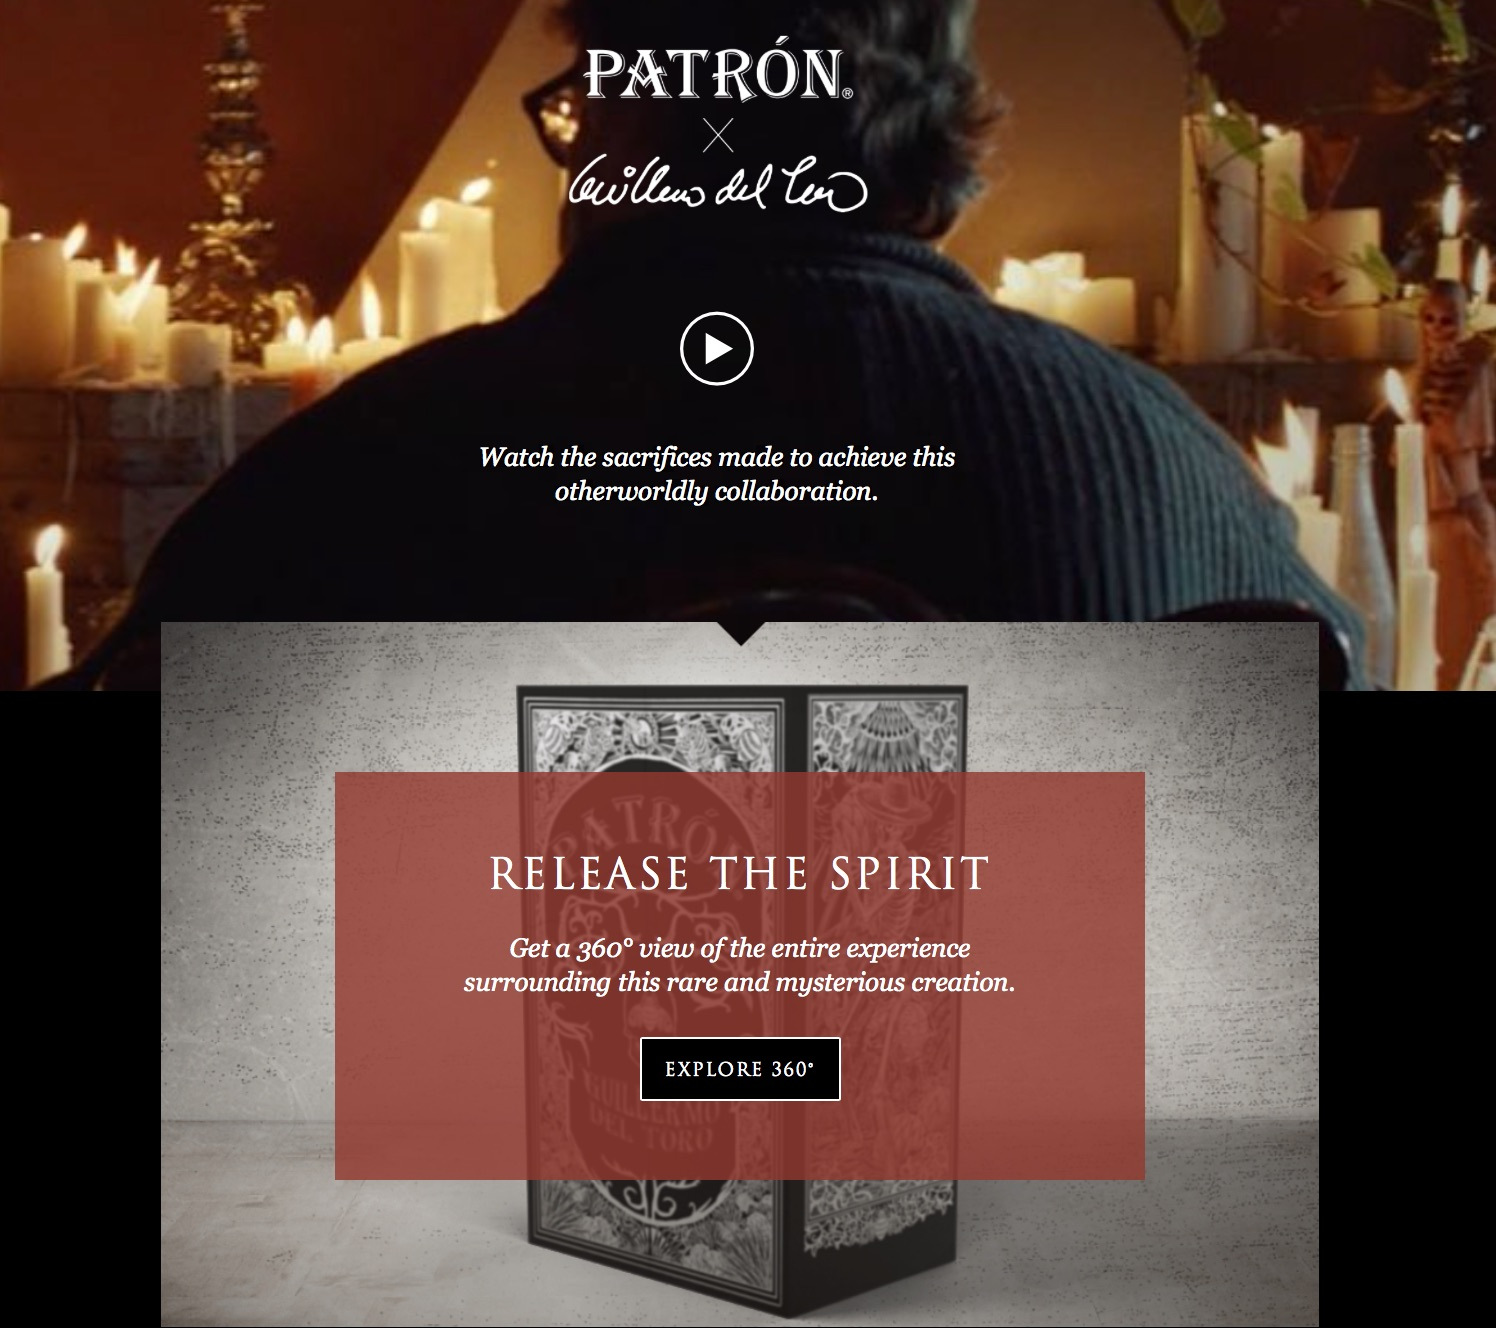 Patrón x Guillermo del Toro // Helped tell the story of the award-winning director's connection to Patron's home and the spirit of his highly-exclusive tequila // Read more